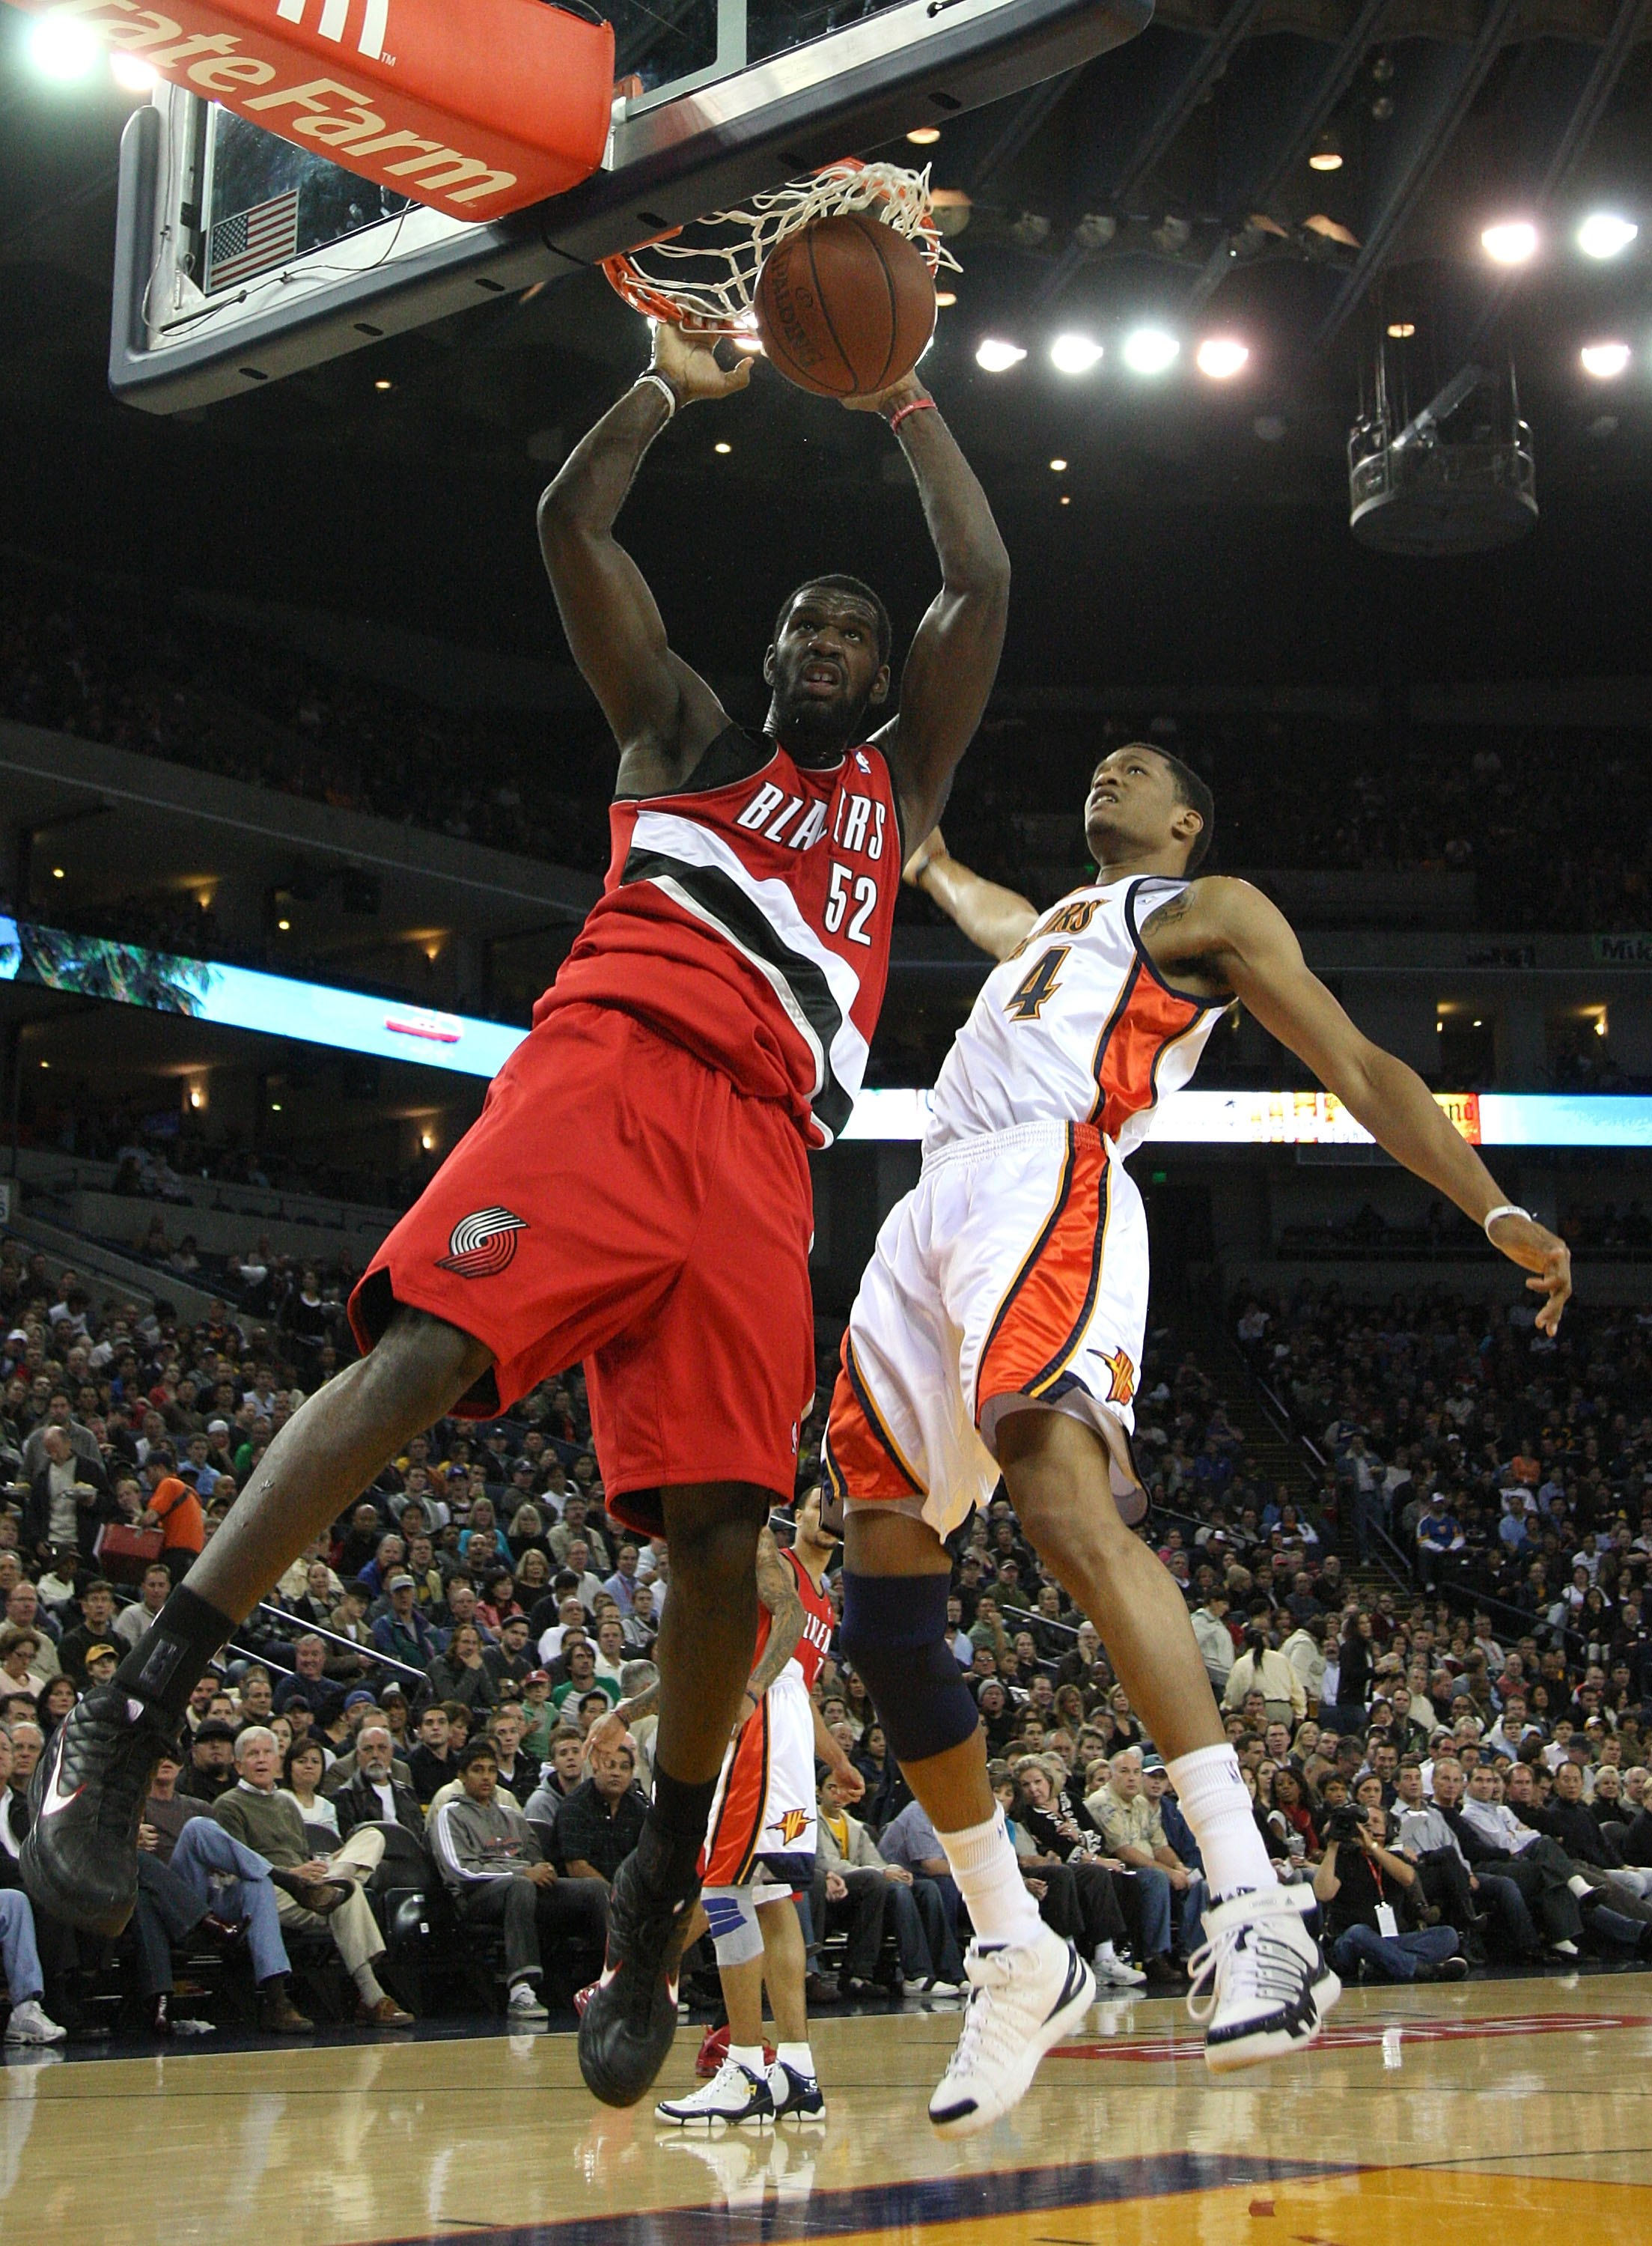 If the Cavs could keep him healthy, Greg Oden would be a great piece to build around.